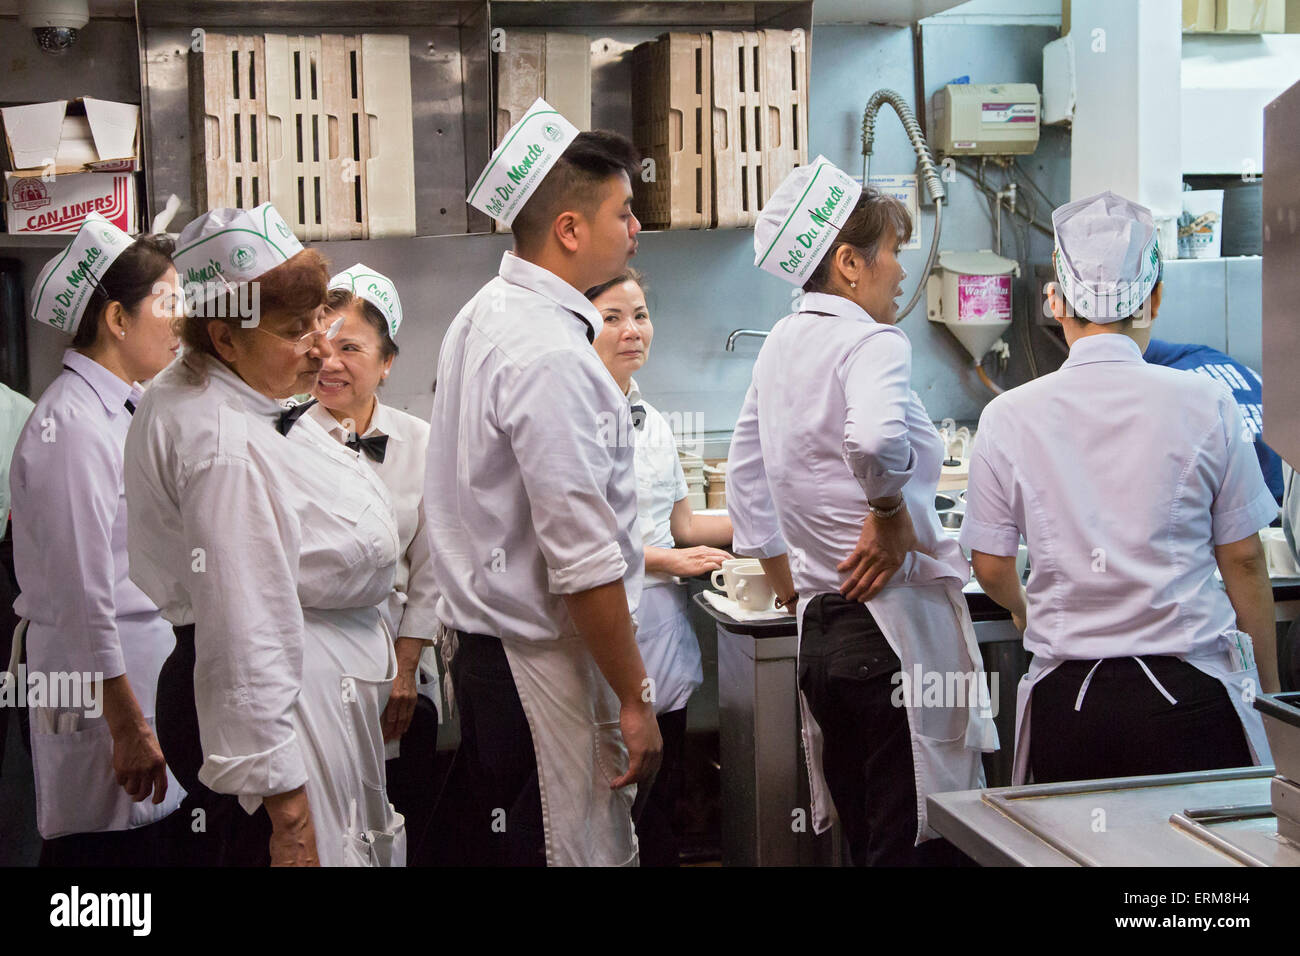 New Orleans, Louisiana - Servers at Café du Monde in the French Market wait in the kitchen to pick up orders - Stock Image